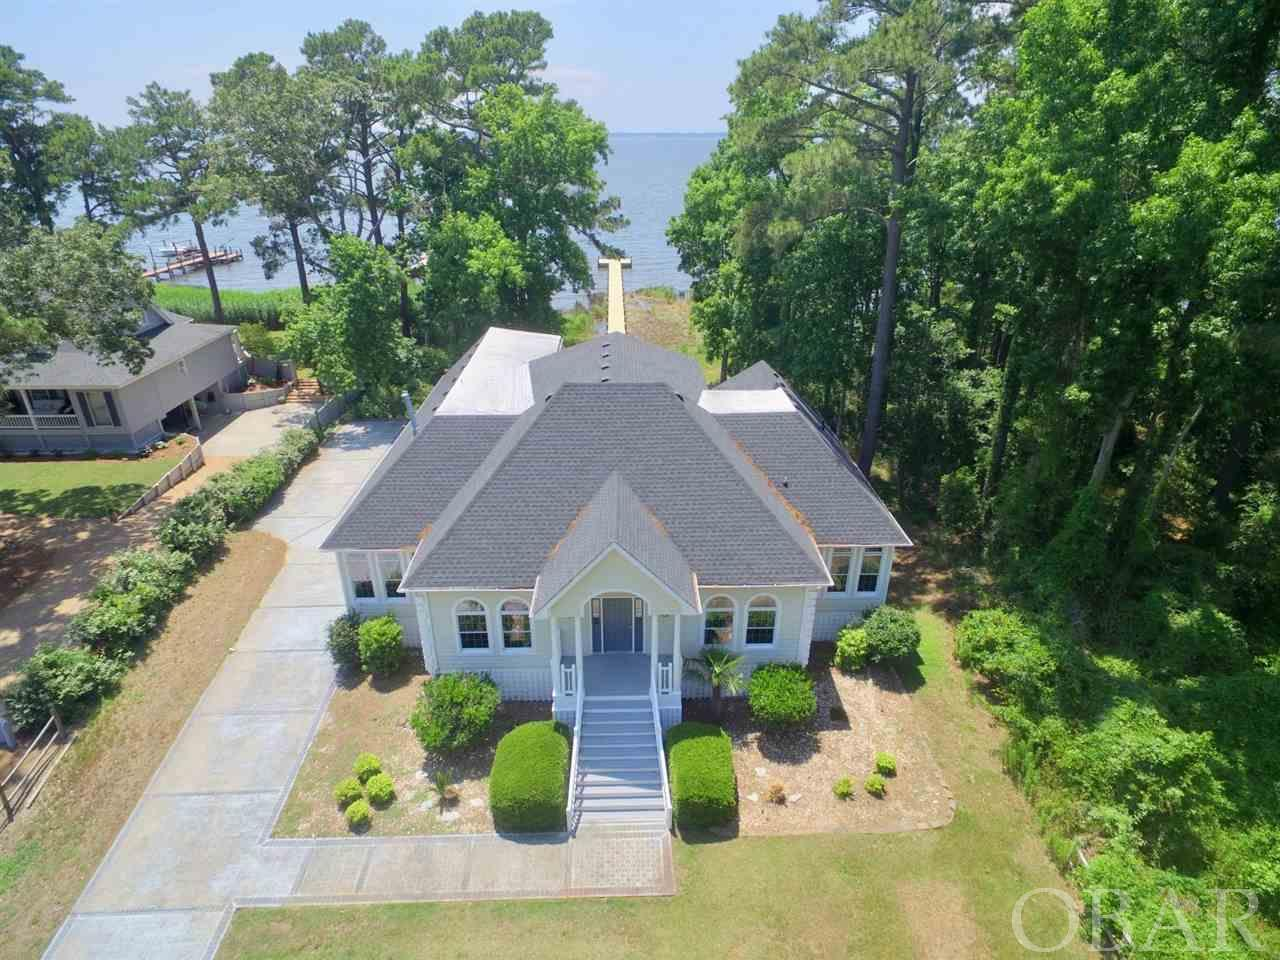 3032 Martins Point Road,Kitty Hawk,NC 27949,4 Bedrooms Bedrooms,4 BathroomsBathrooms,Residential,Martins Point Road,100410